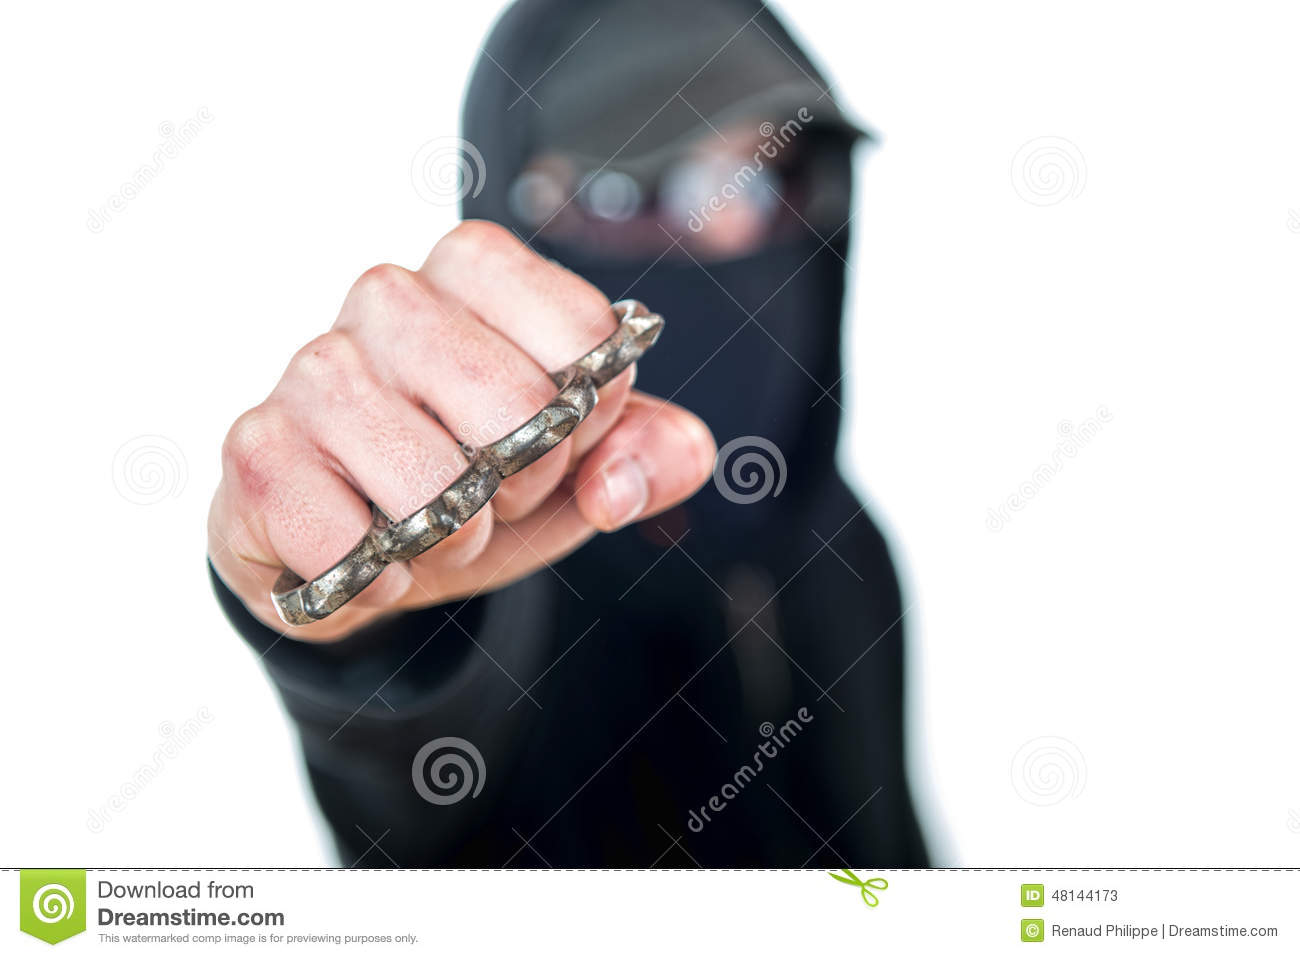 An offender with Brass knuckles